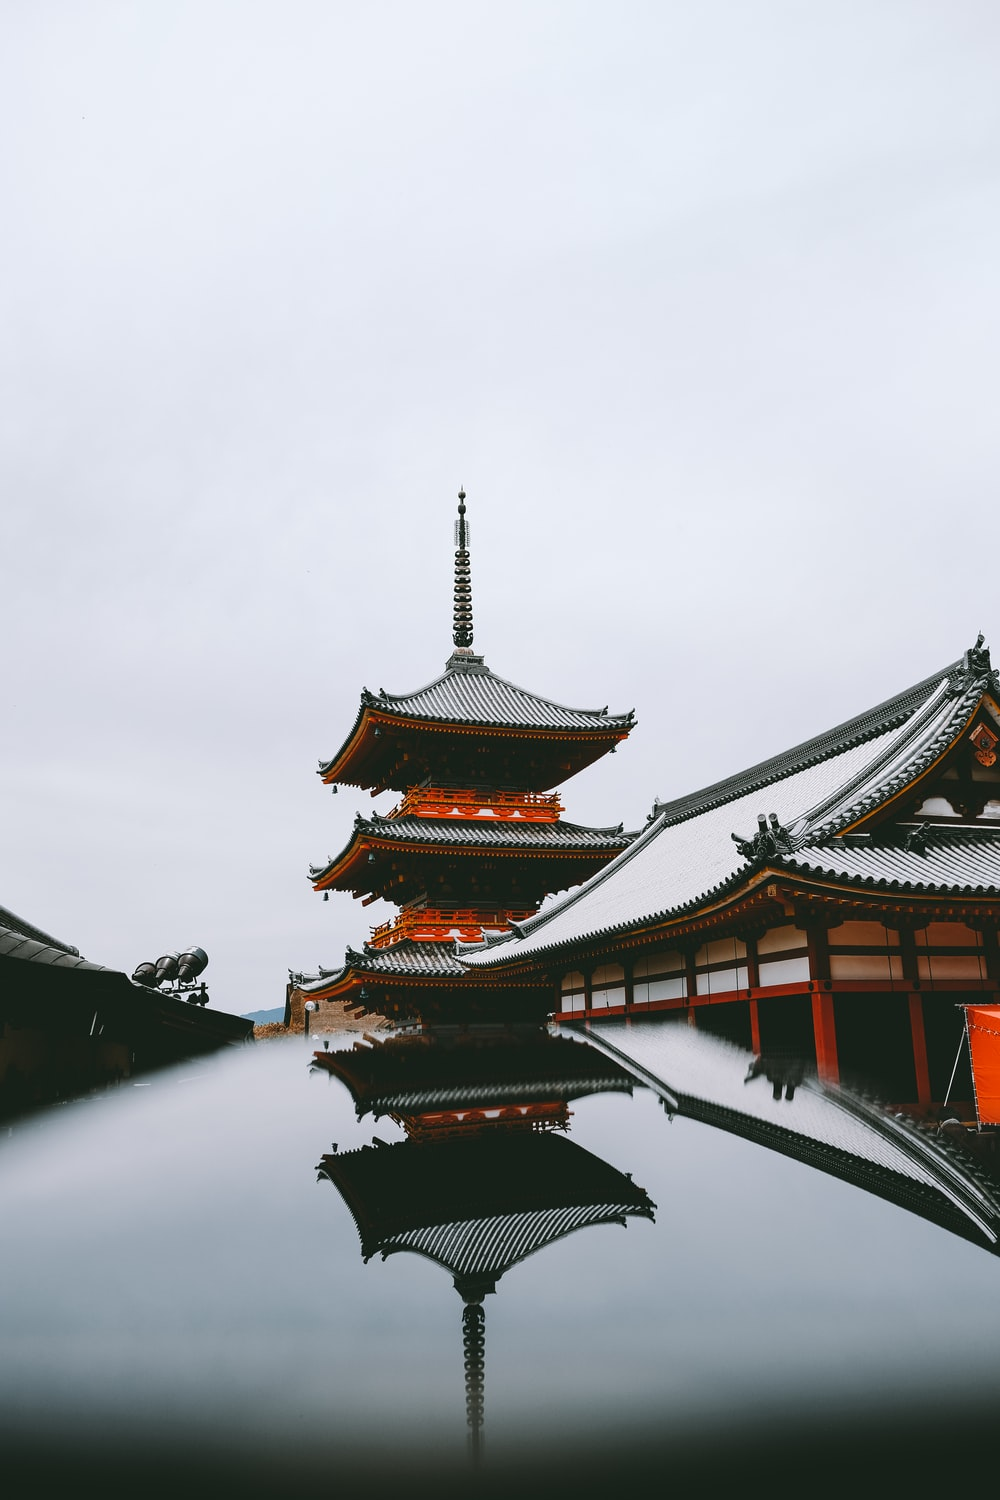 black and red temple under white sky at daytime